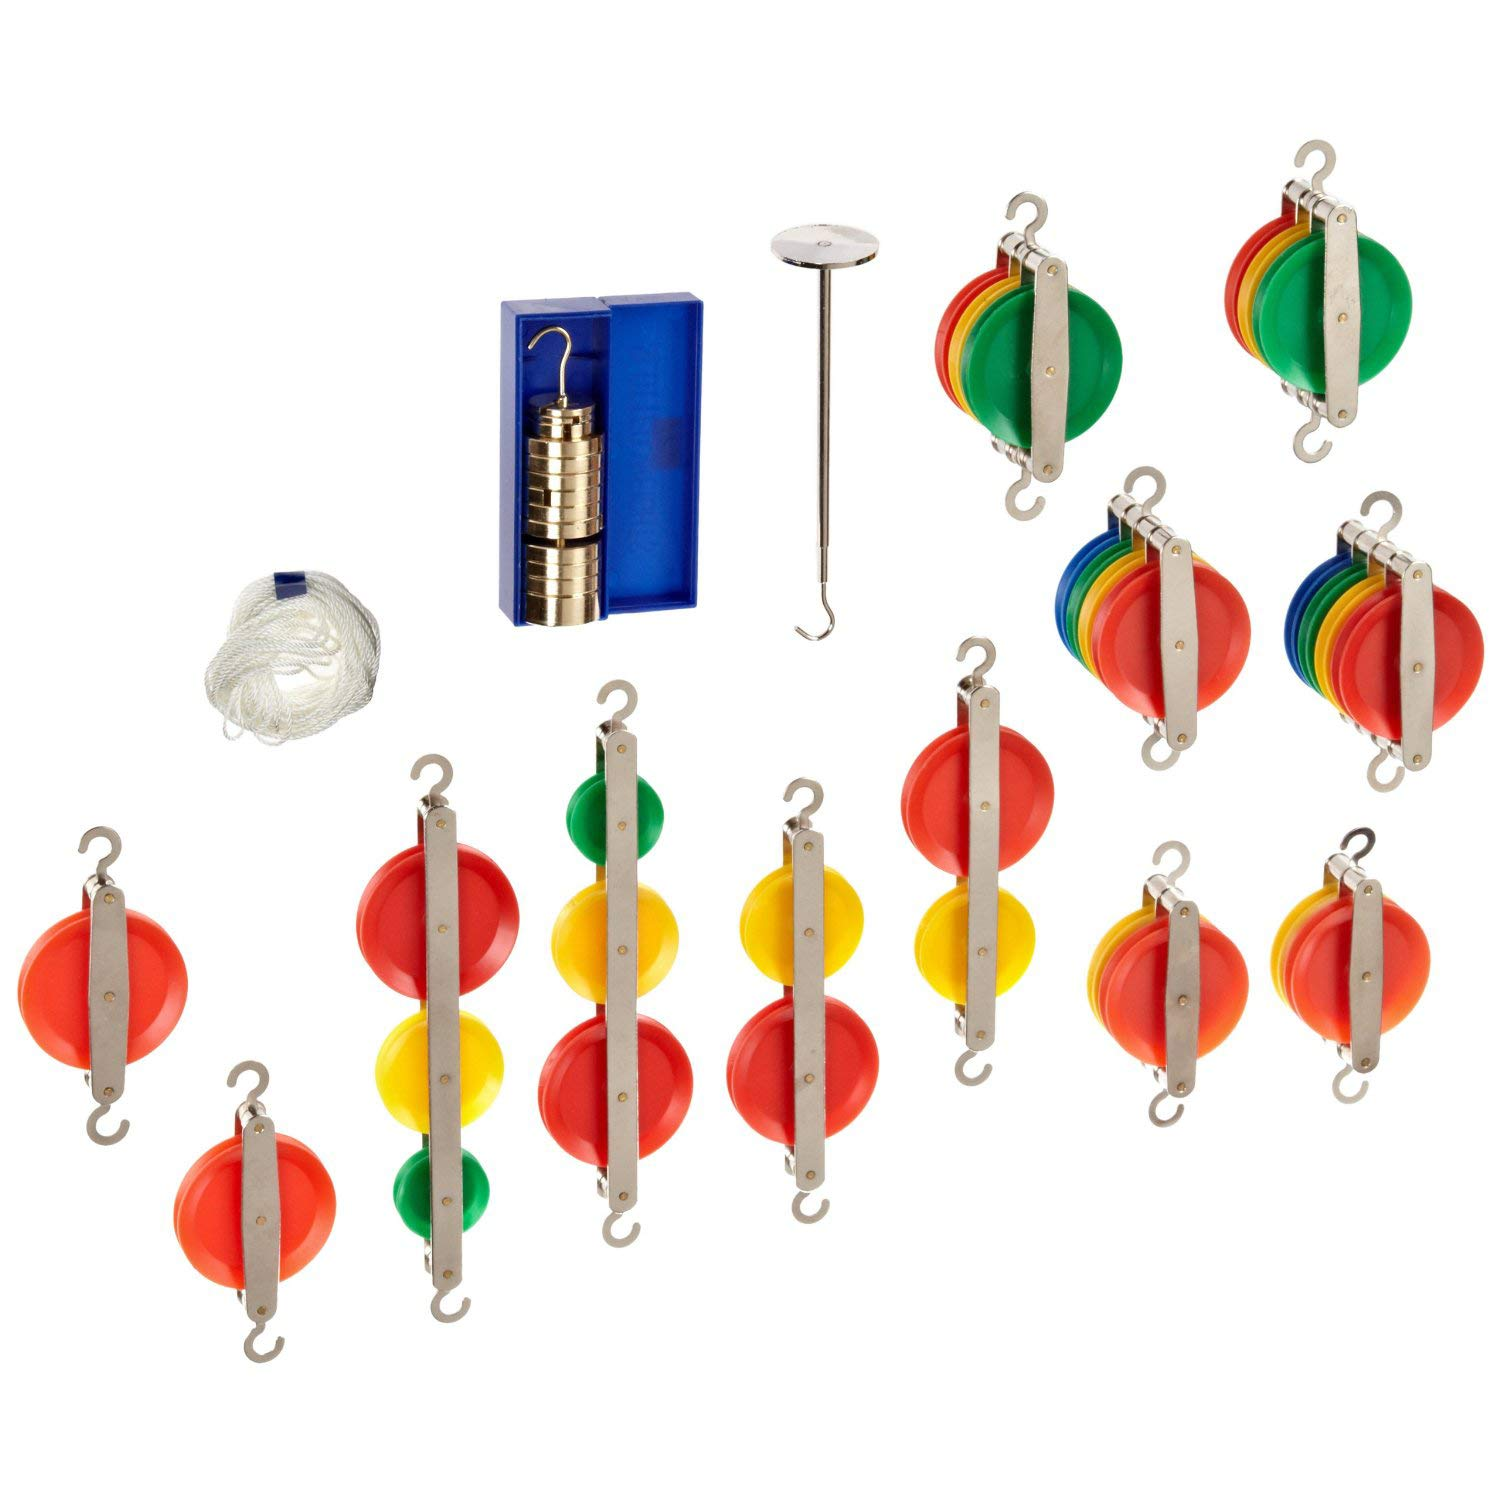 American Educational 7-1607 Pulley Kit by American Educational Products